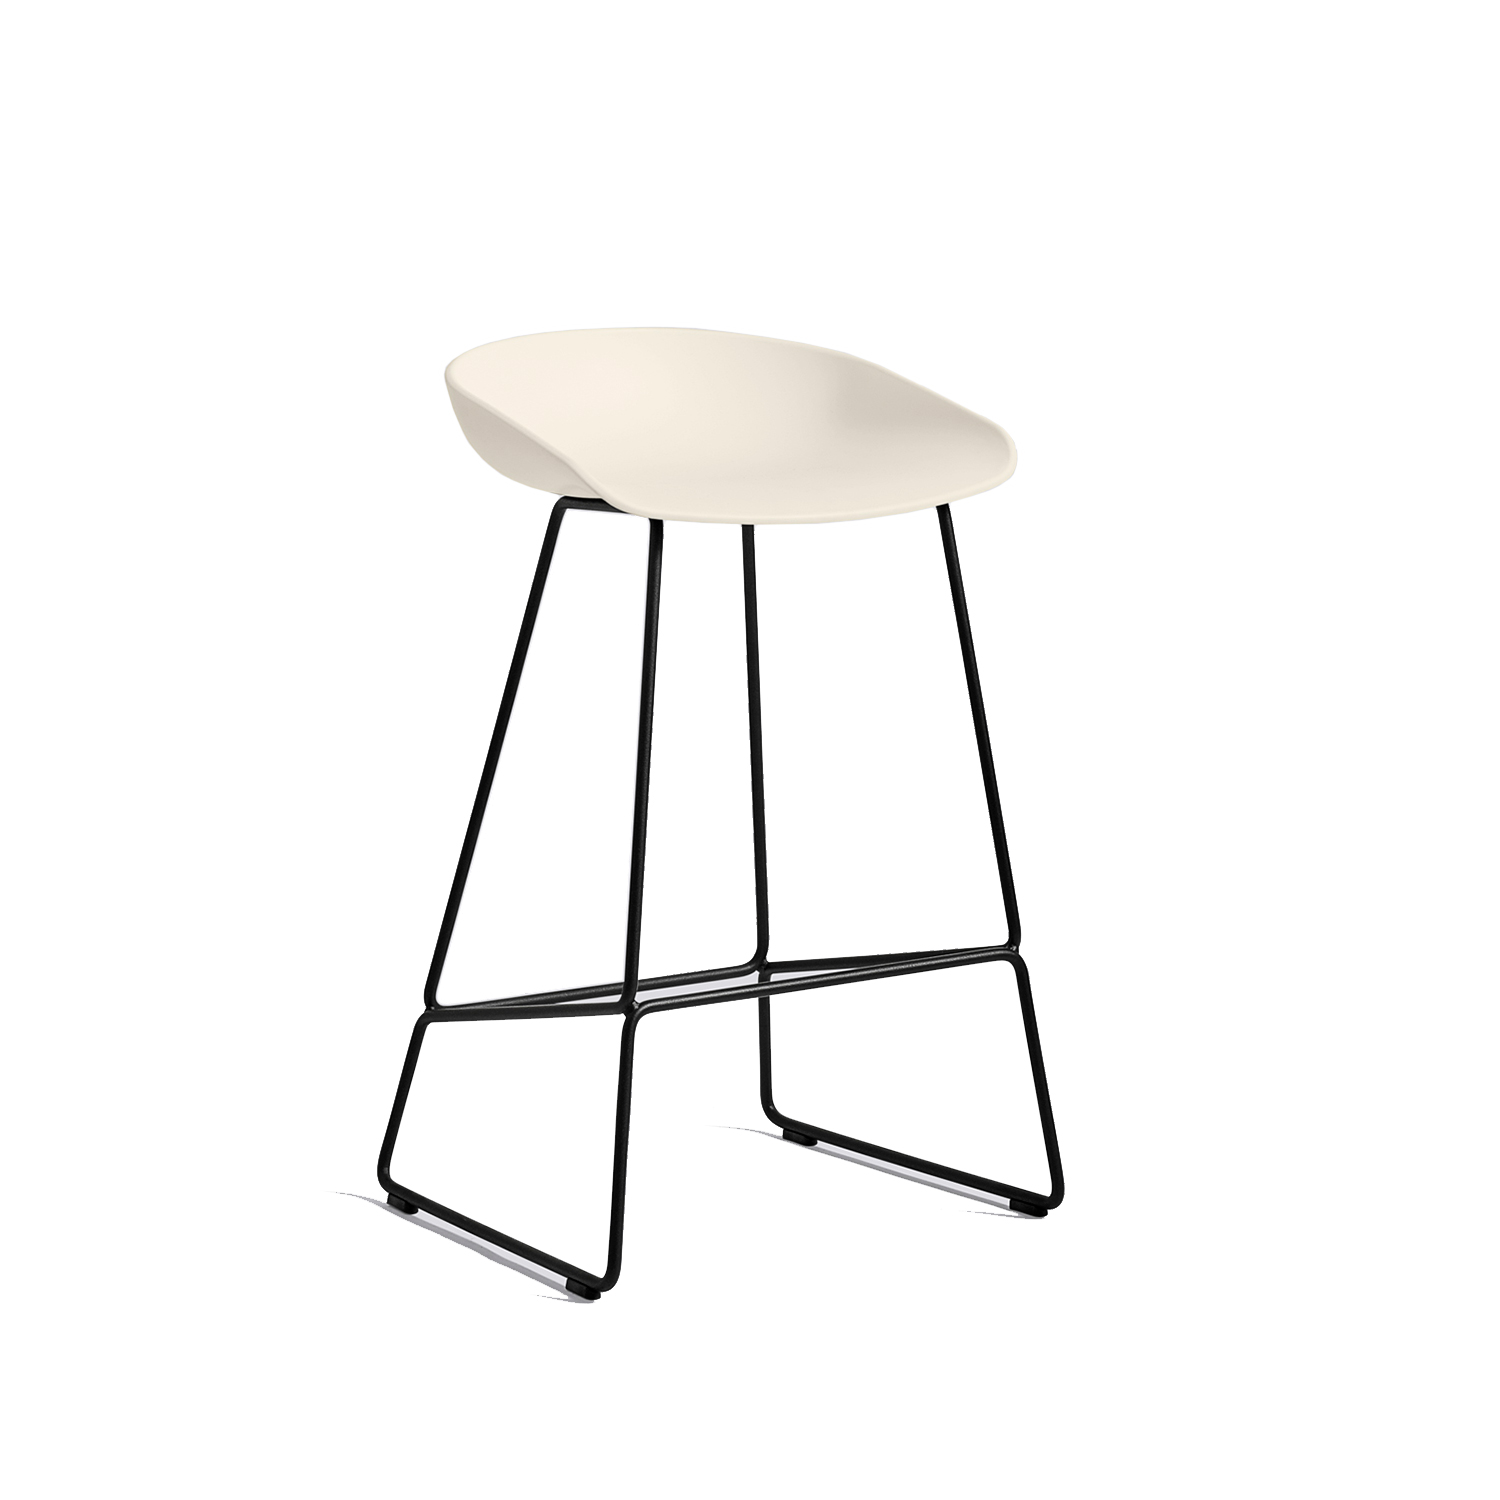 About a Stool 38 barstol h65, cream white/svart